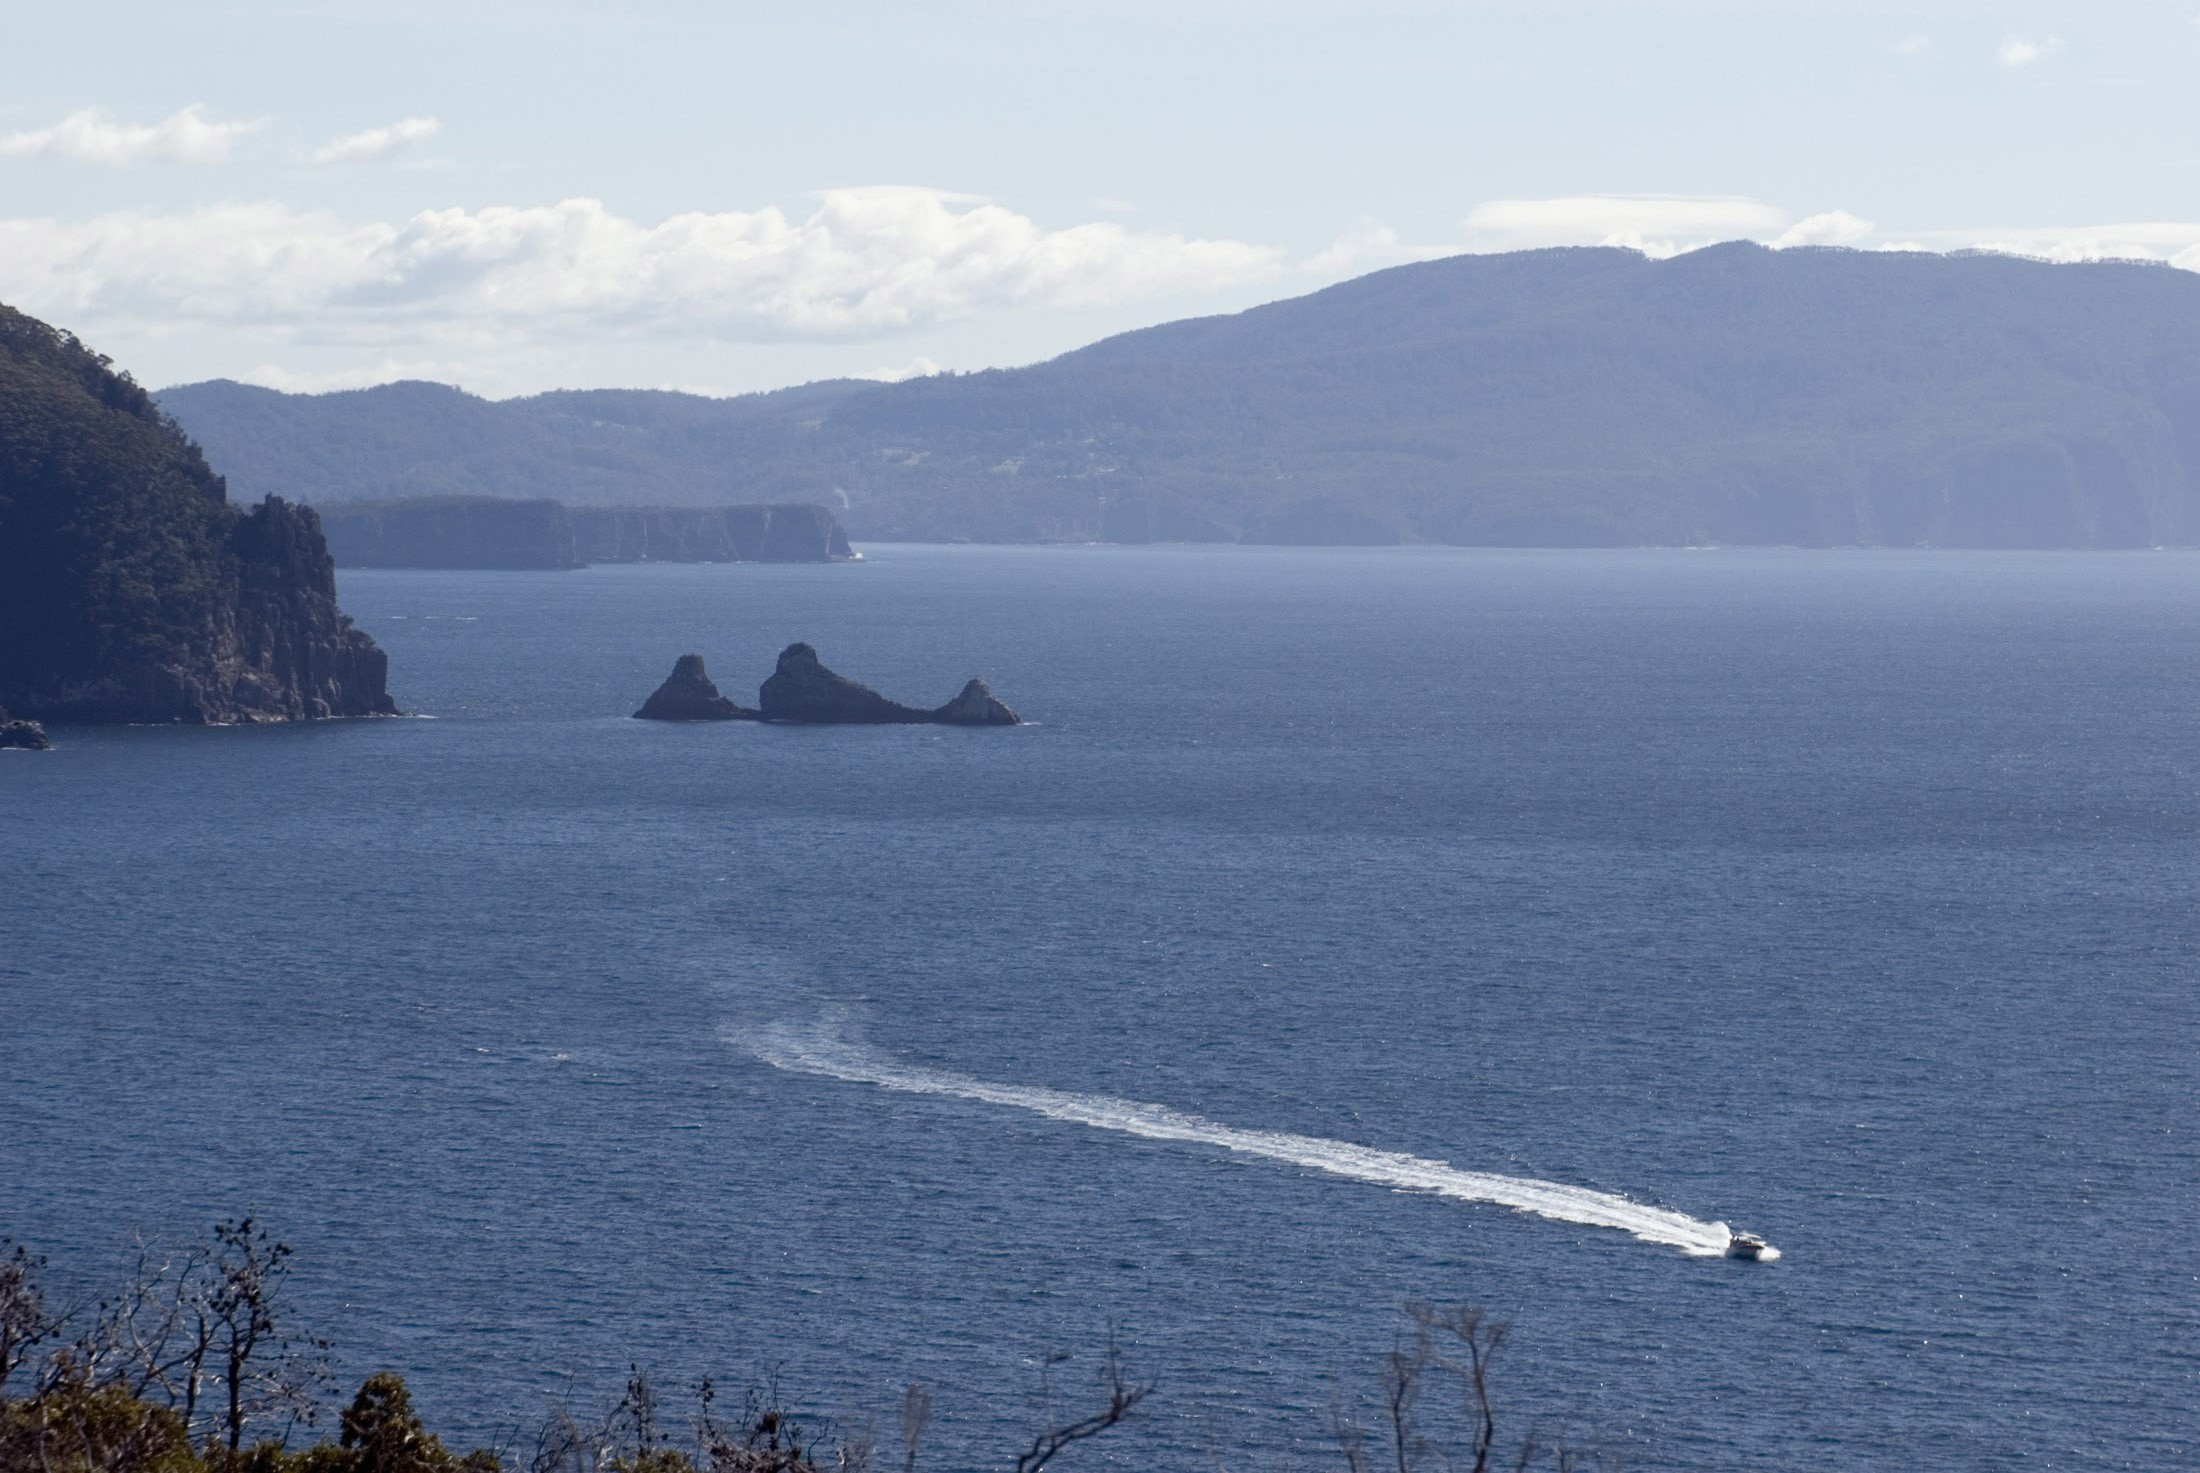 tasman peninsula ocean scene with a jetboat in the foreground